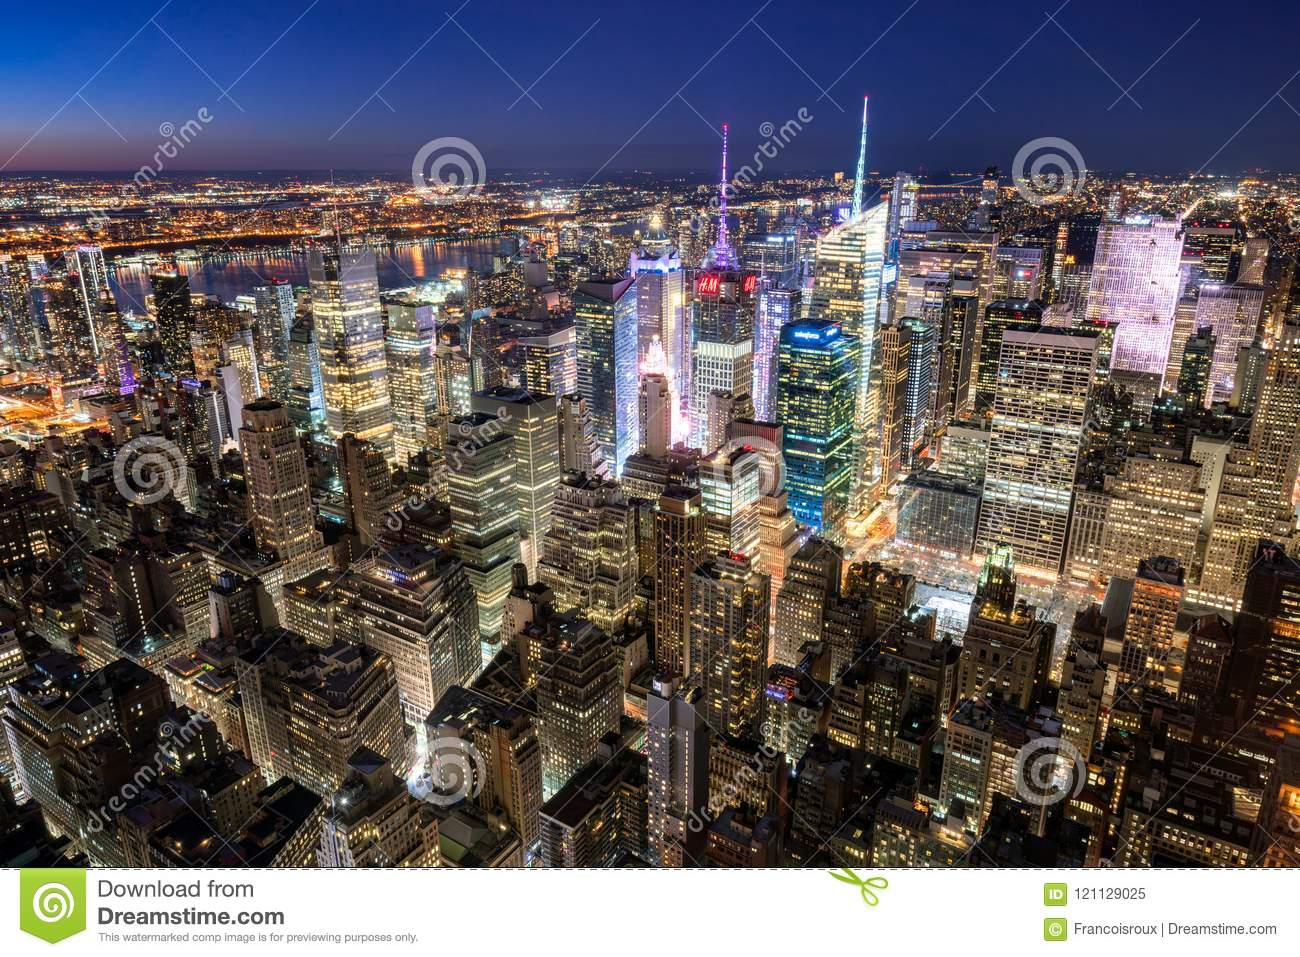 Manhattan skyscrapers at night Times Square. The view includes The New York Times Tower, Rockefeller Center. New York City